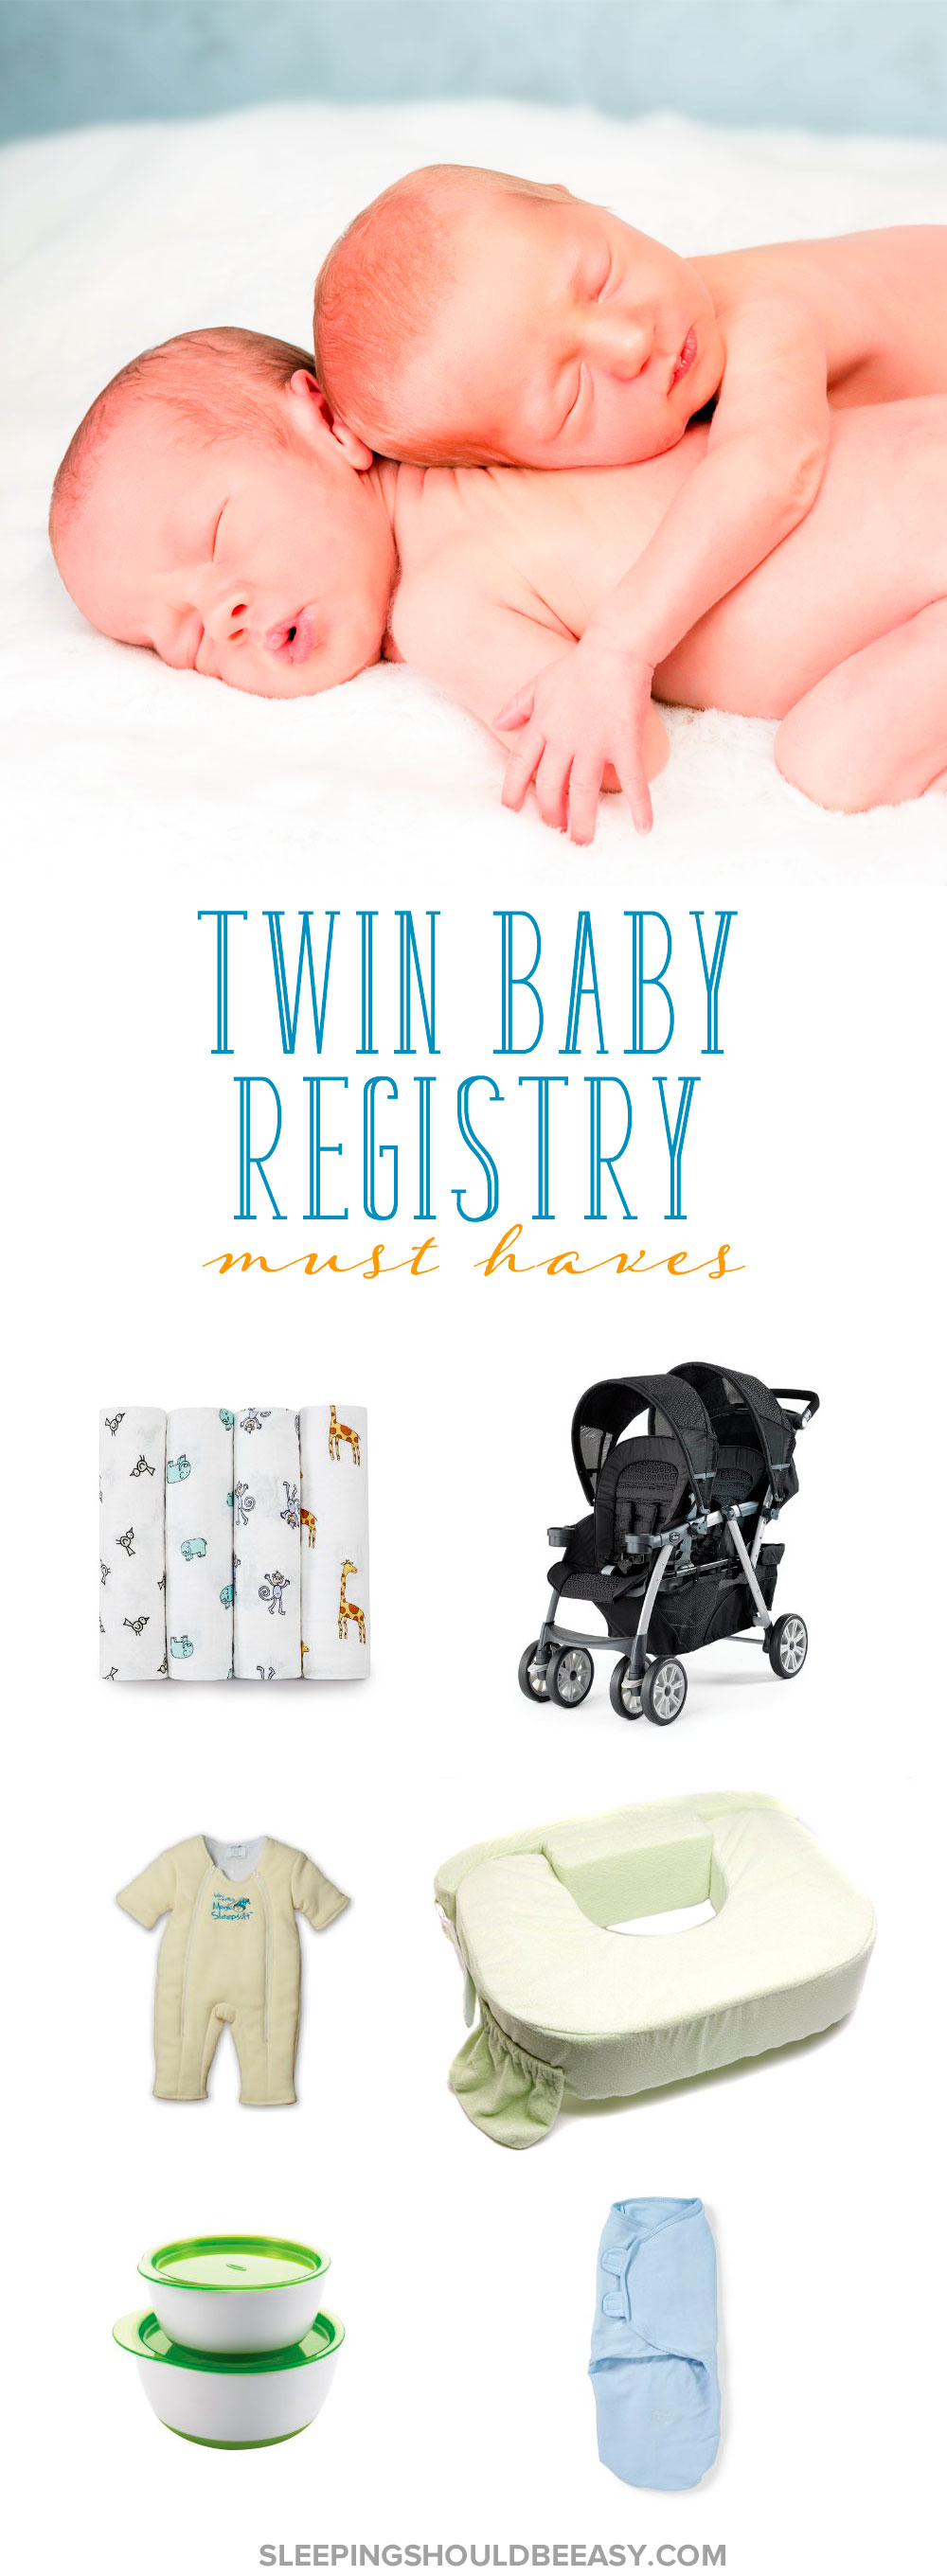 Are you expecting twins and want to know everything you need to prepare for the babies? Check out this comprehensive list of twin must haves!